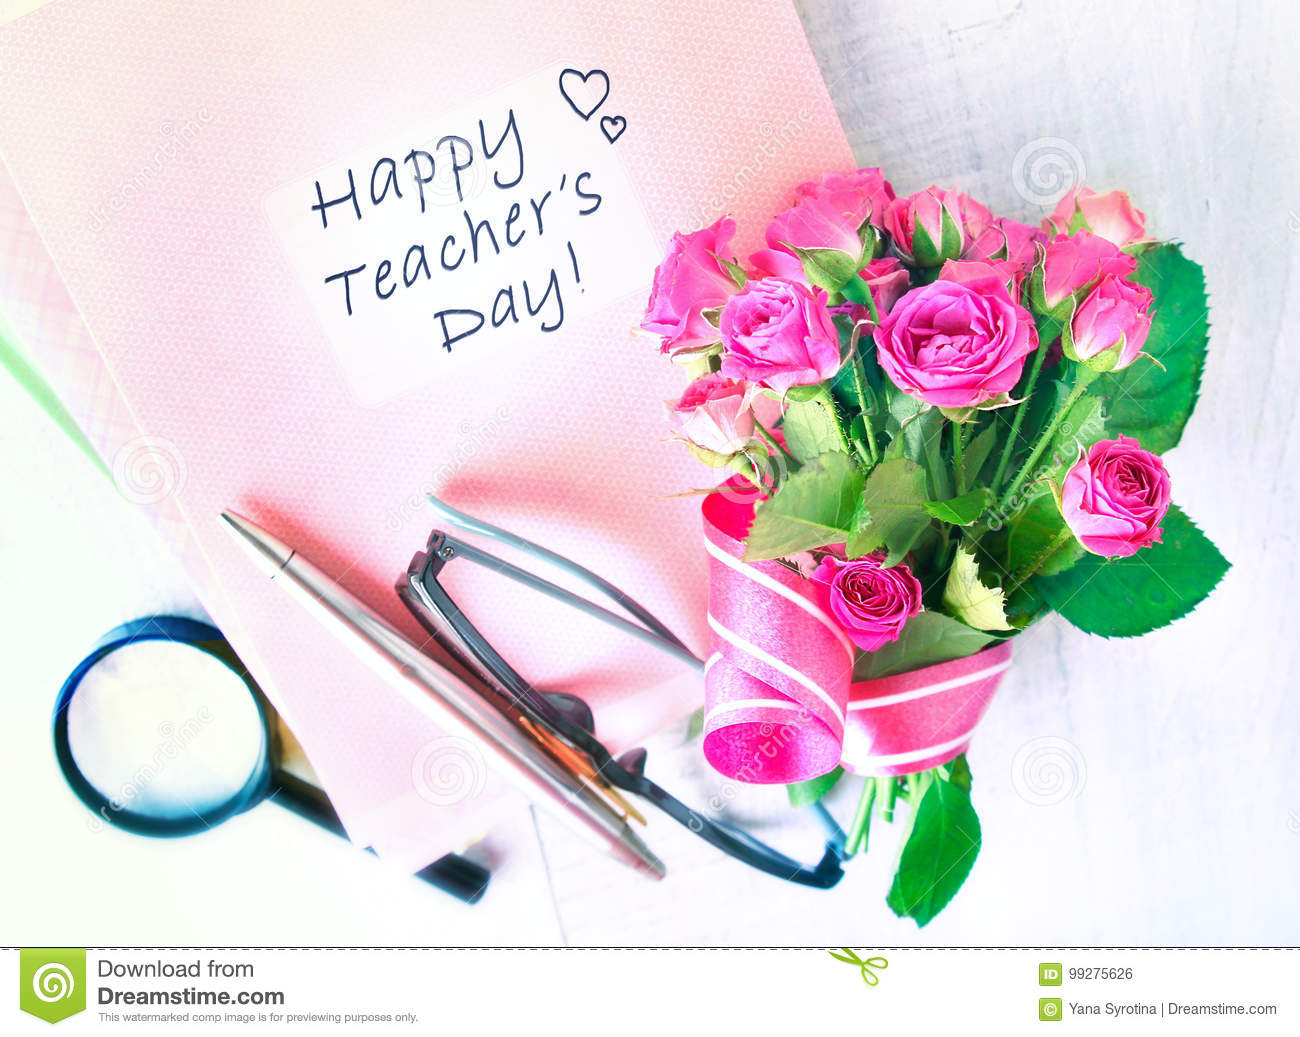 Teachers day holiday greeting card stock photo image of icon download teachers day holiday greeting card stock photo image of icon m4hsunfo